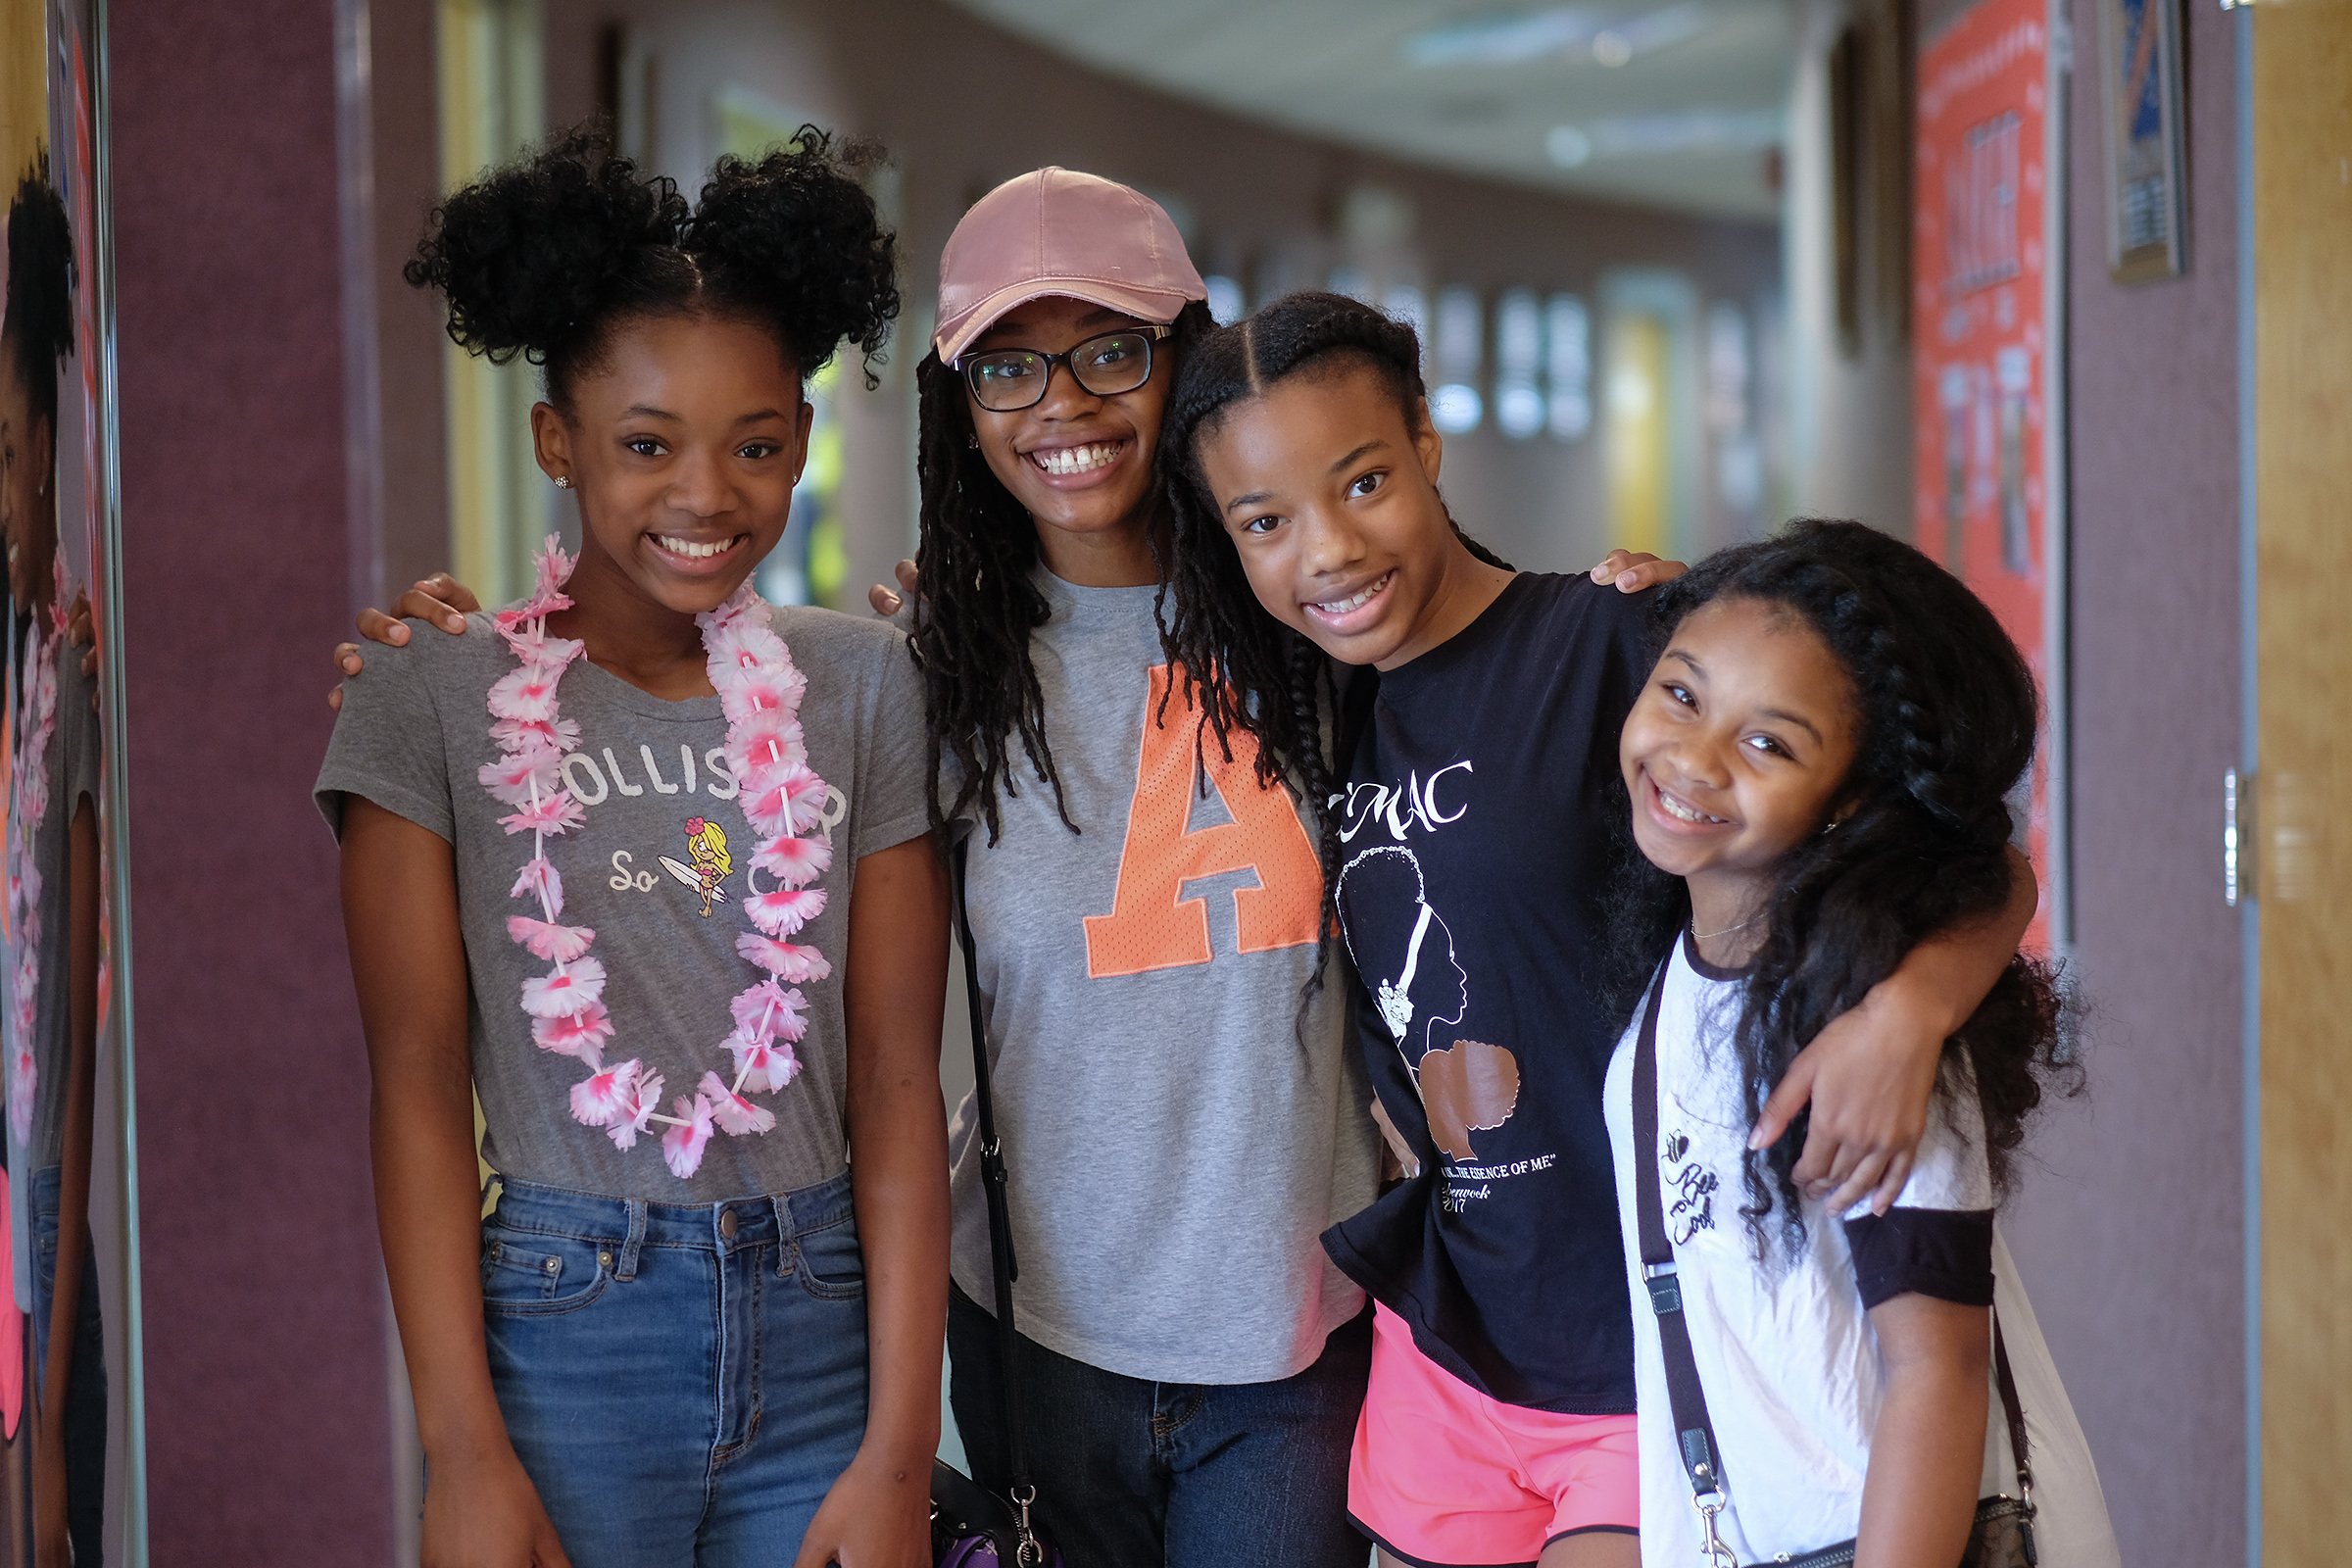 Students are all smiles at Jackson State University's Summer Theatre Camp. (Photo by Charles A. Smith/JSU)